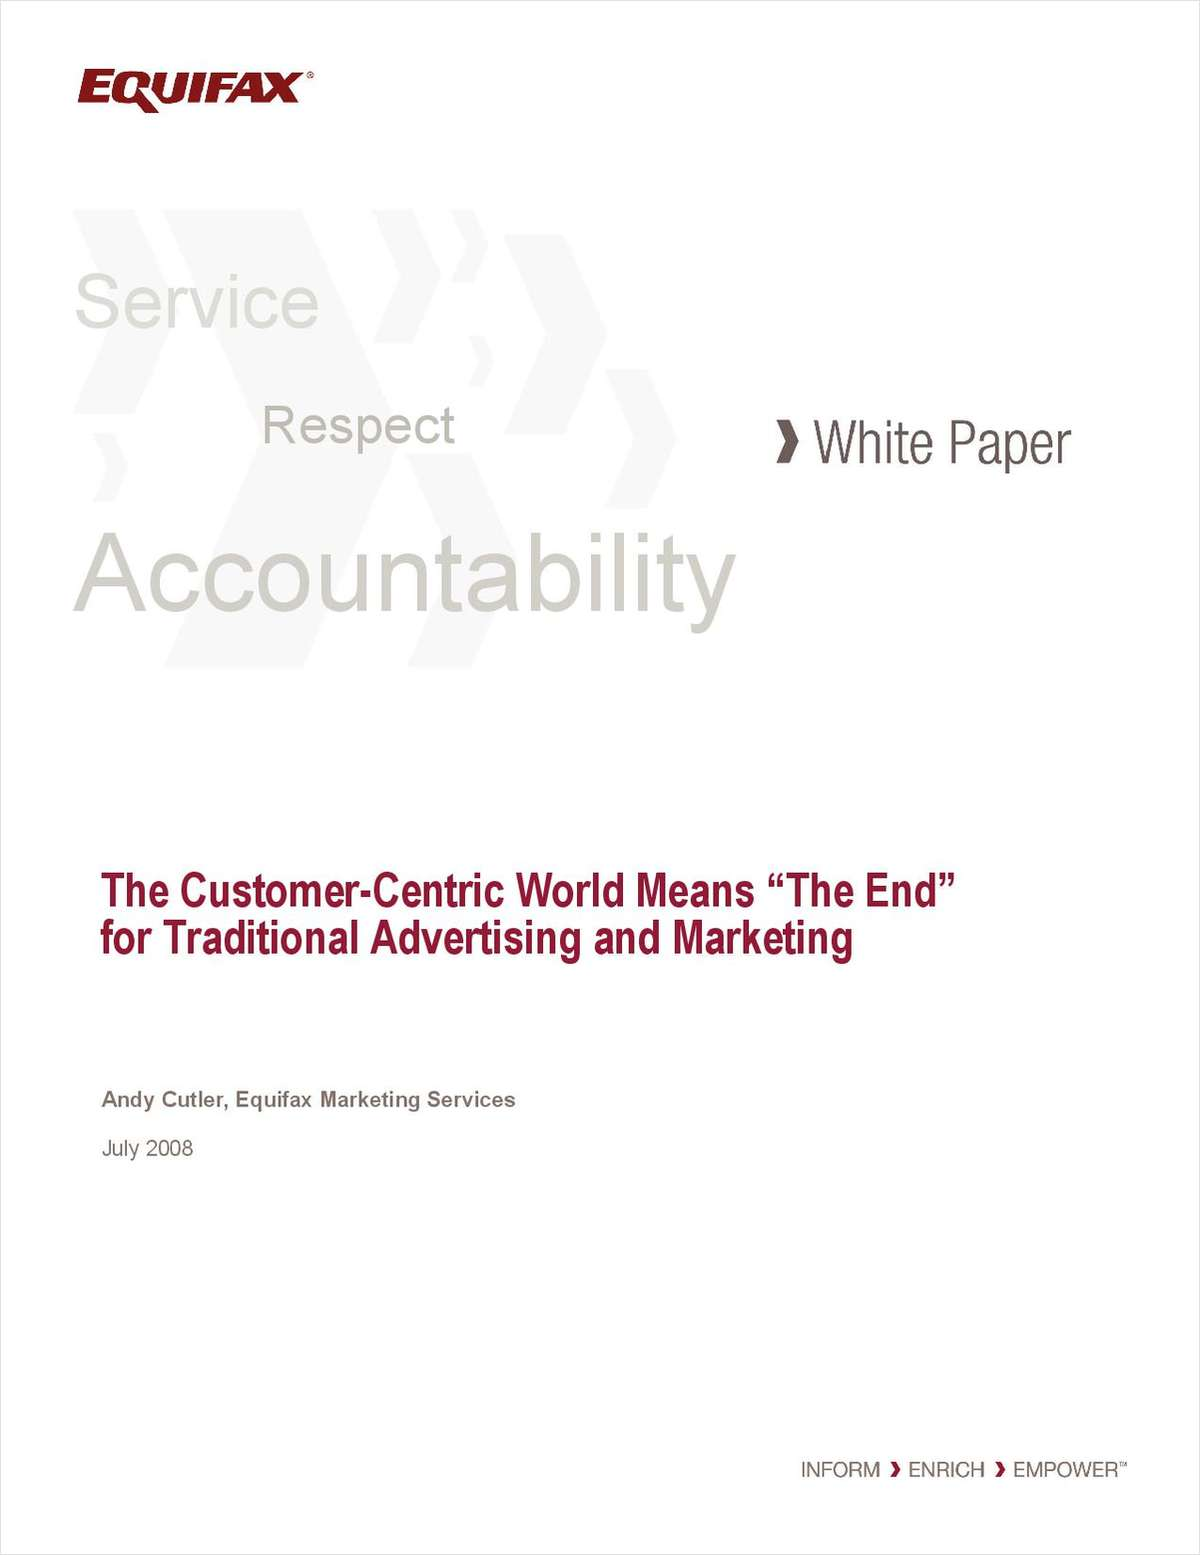 The Customer-Centric World Means 'The End' for Traditional Advertising and Marketing